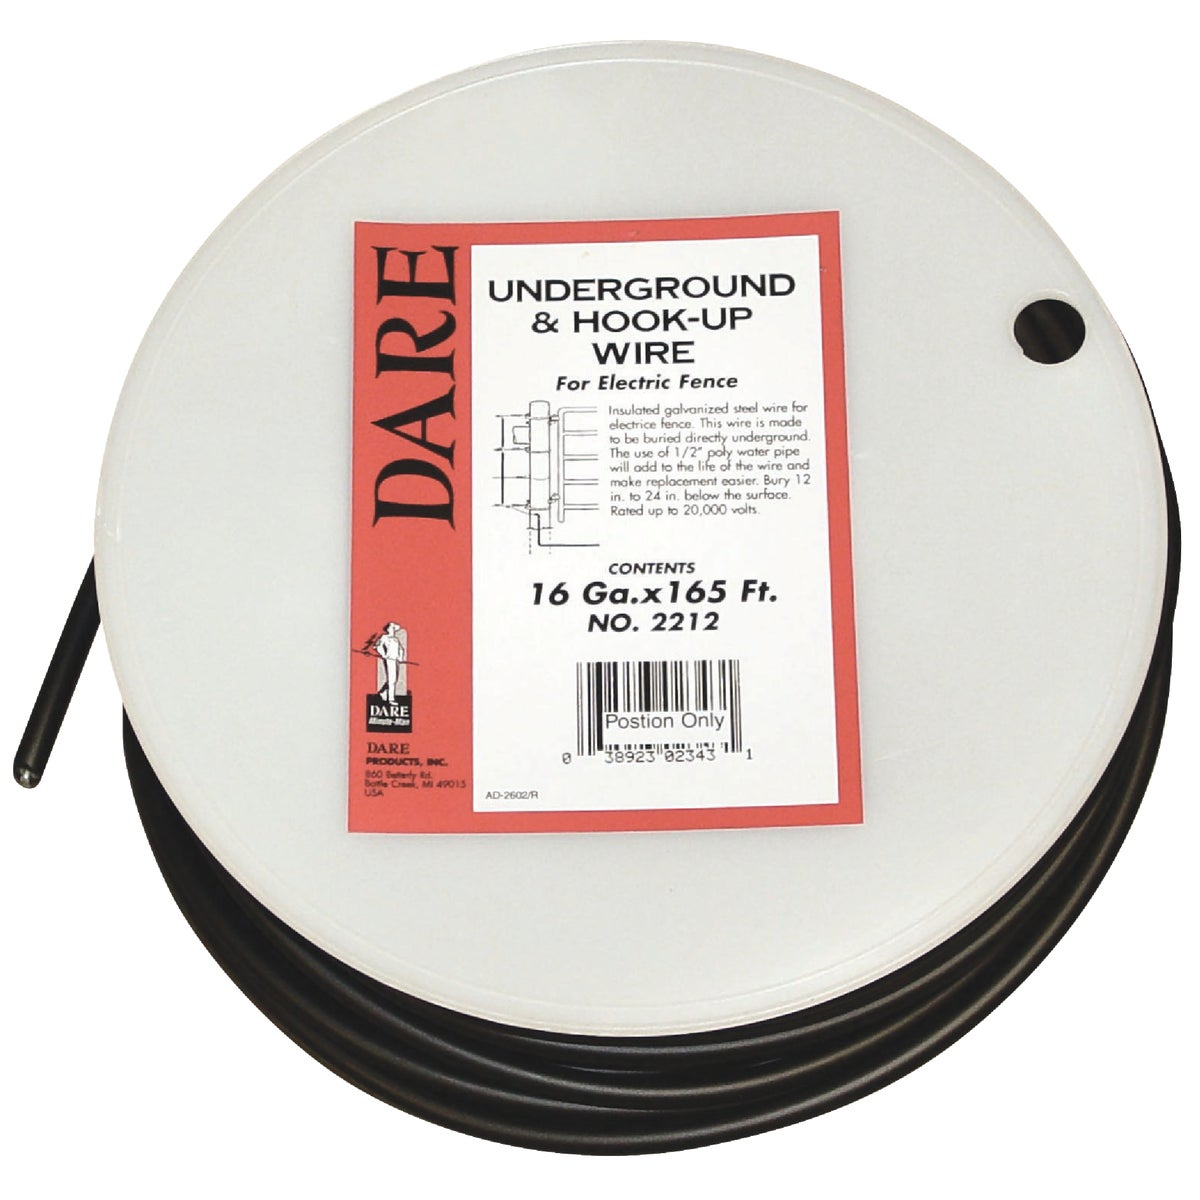 14GX165' UNDRGROUND WIRE - 2212 by Dare Products Inc